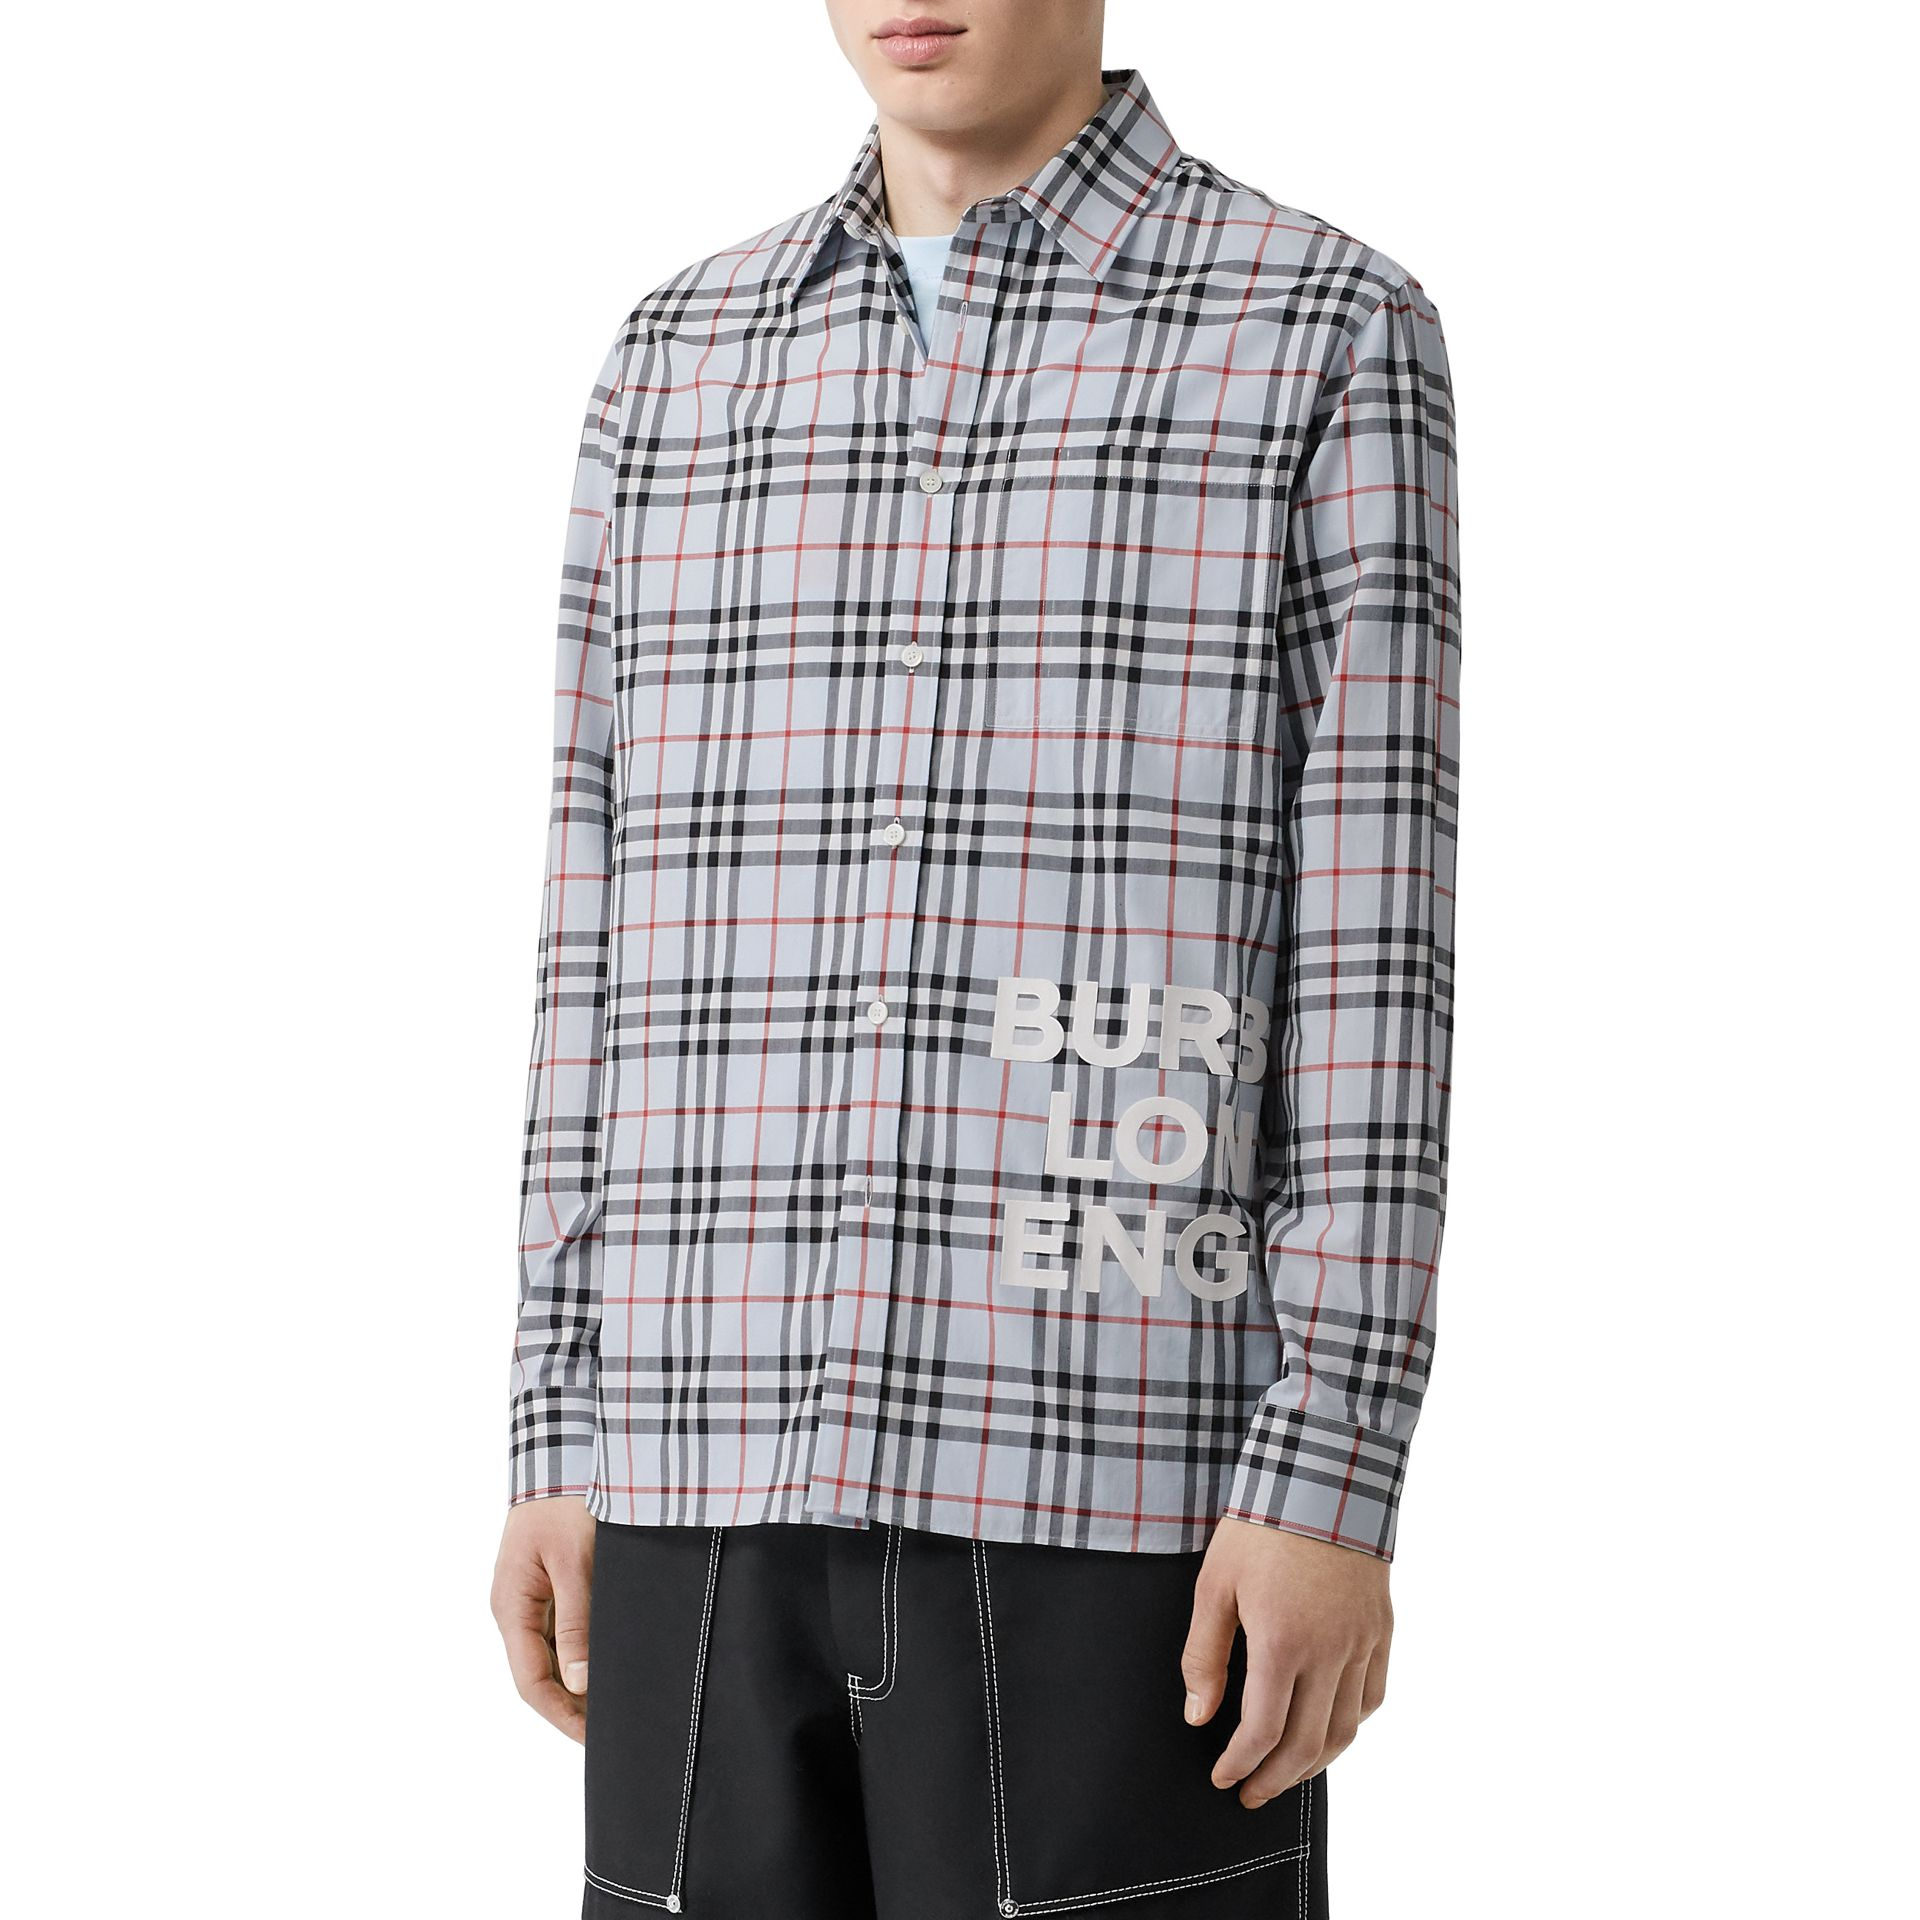 Logo Print Check Cotton Oversized Shirt in Pale Blue - Men | Burberry Hong Kong S.A.R - gallery image 7